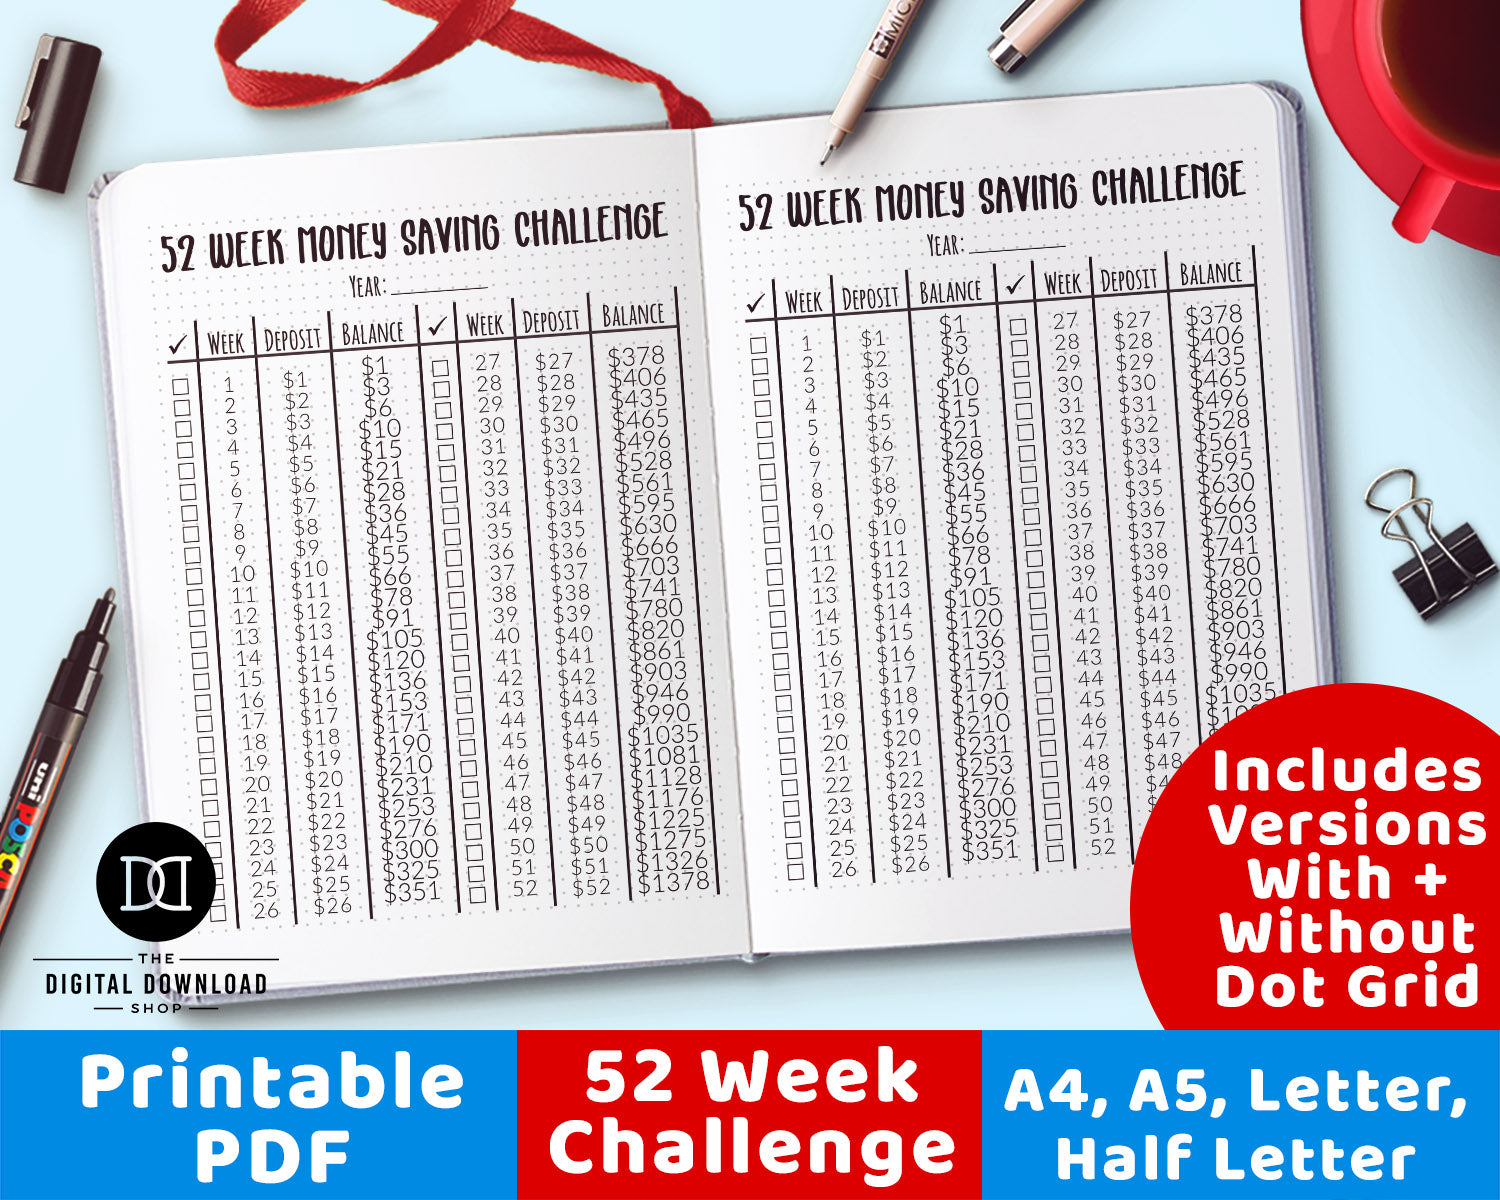 graphic about 52 Week Money Saving Challenge Printable titled Funds Preserving Issue Printable